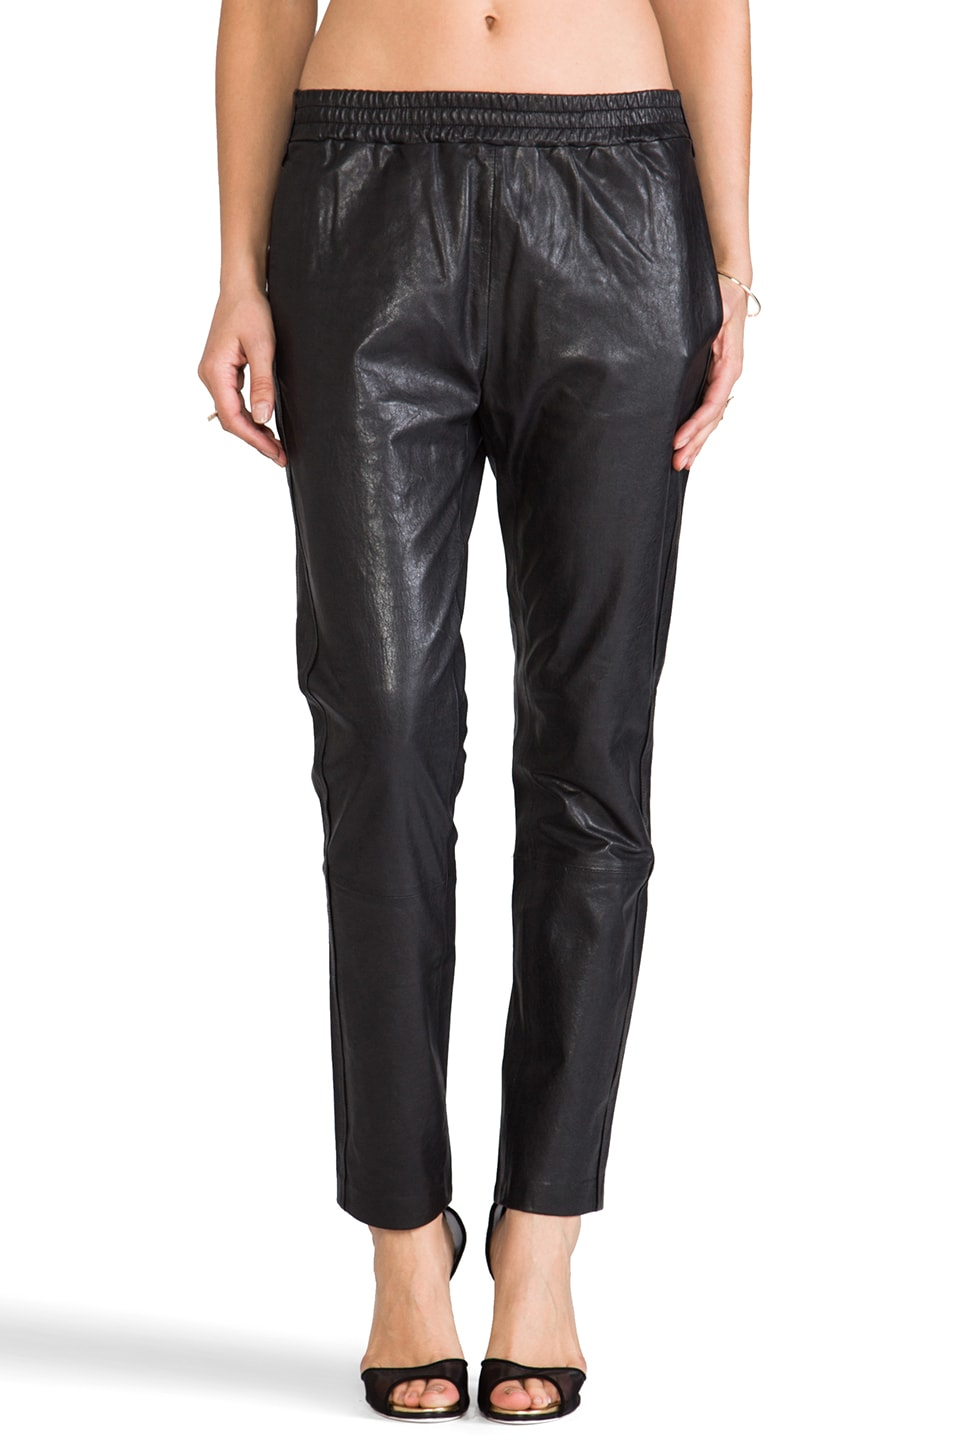 Marc by Marc Jacobs Karlie Leather Pants in Black